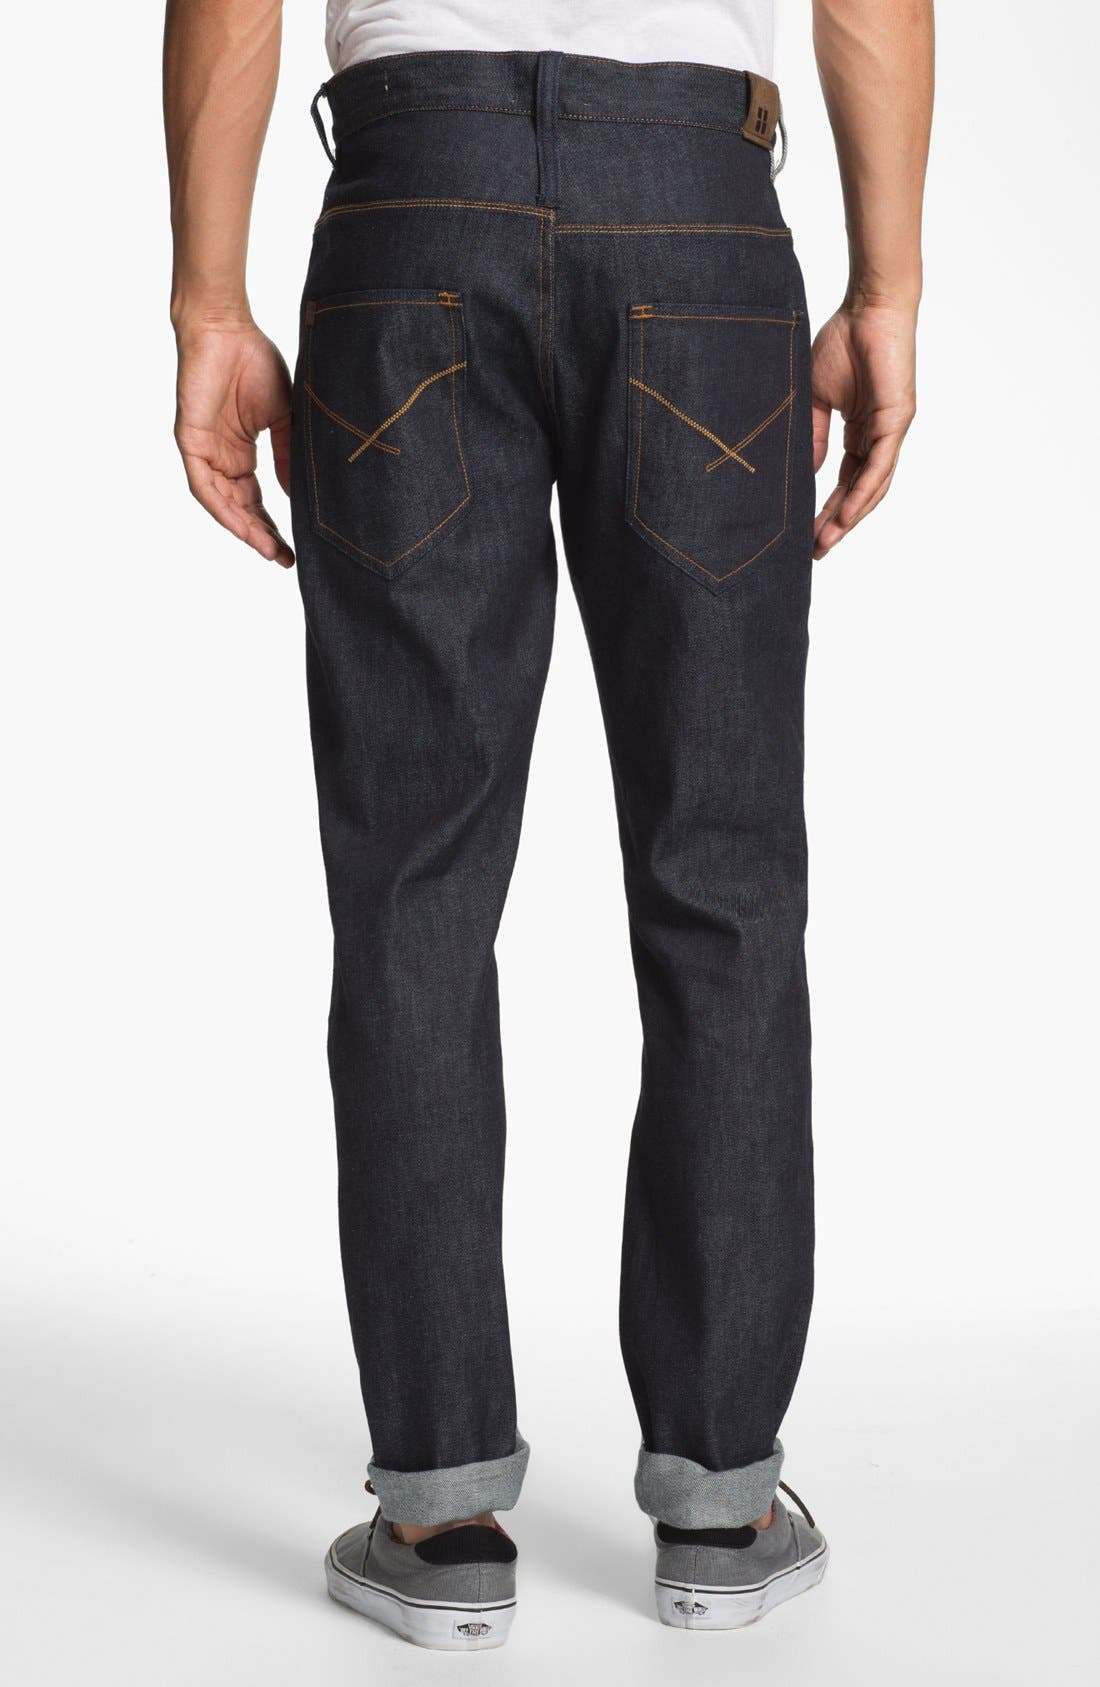 Main Image - Insight 'Loose Joints' Slim Leg Jeans (Indigo Raw)